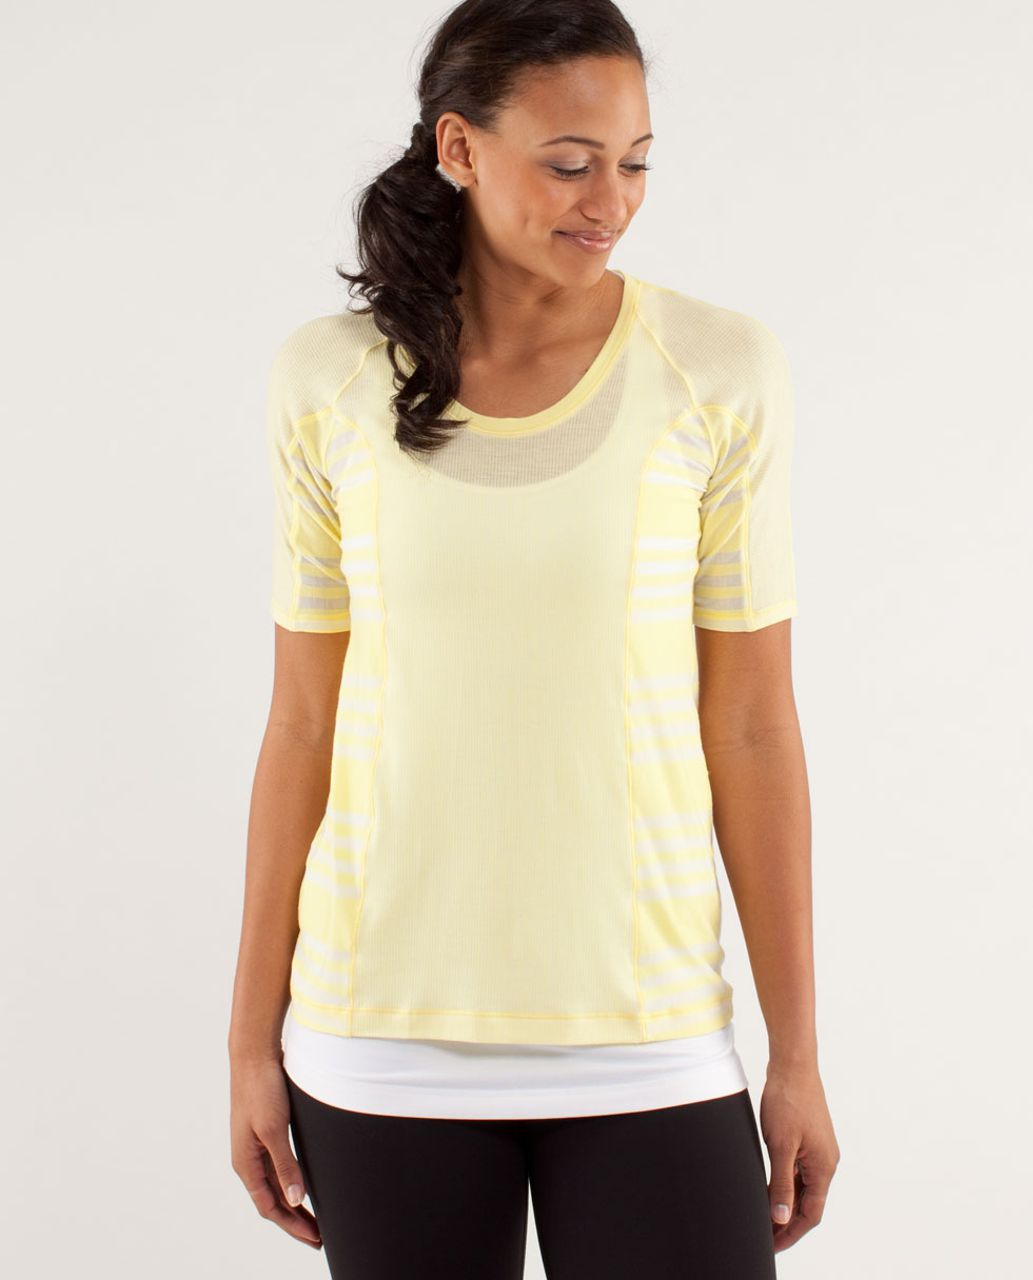 Lululemon Puri Tee Short Sleeve - Tonka Stripe Mellow Lemon / Mellow Lemon / Ocean Stripe Mellow Lemon